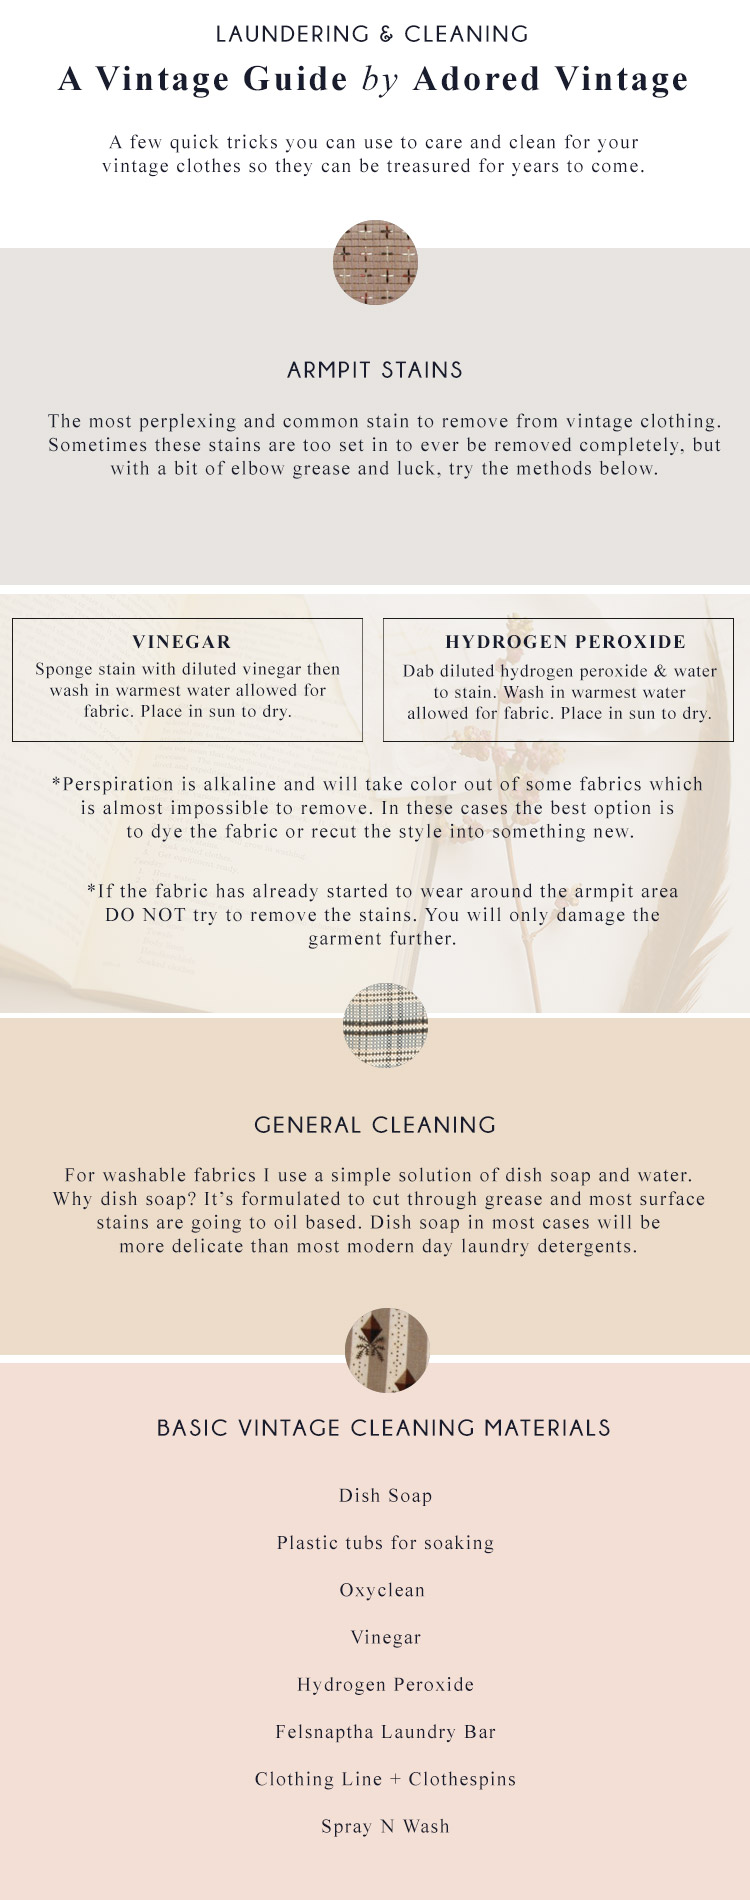 Guide to Cleaning and Laundering Vintage Clothing from Adored Vintage